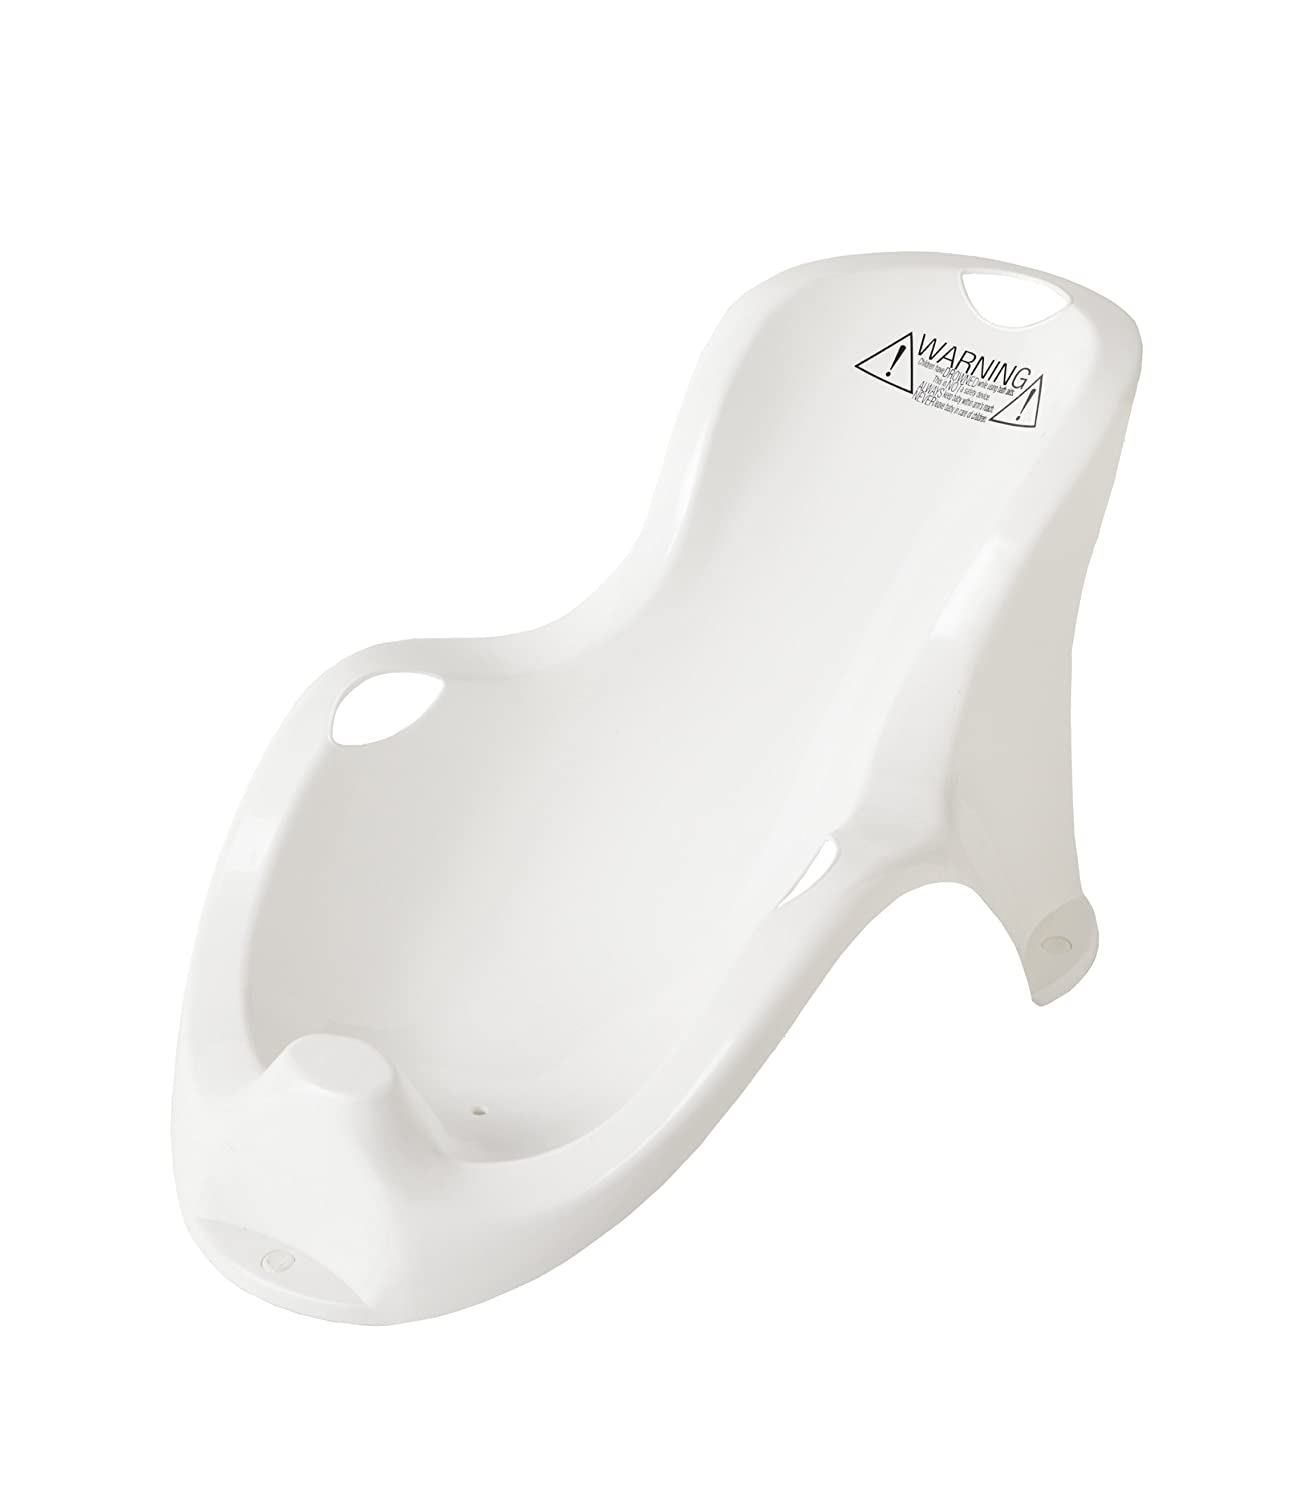 Amazon.com : Infant Bath Seat : Baby Bathing Seats And Tubs : Baby